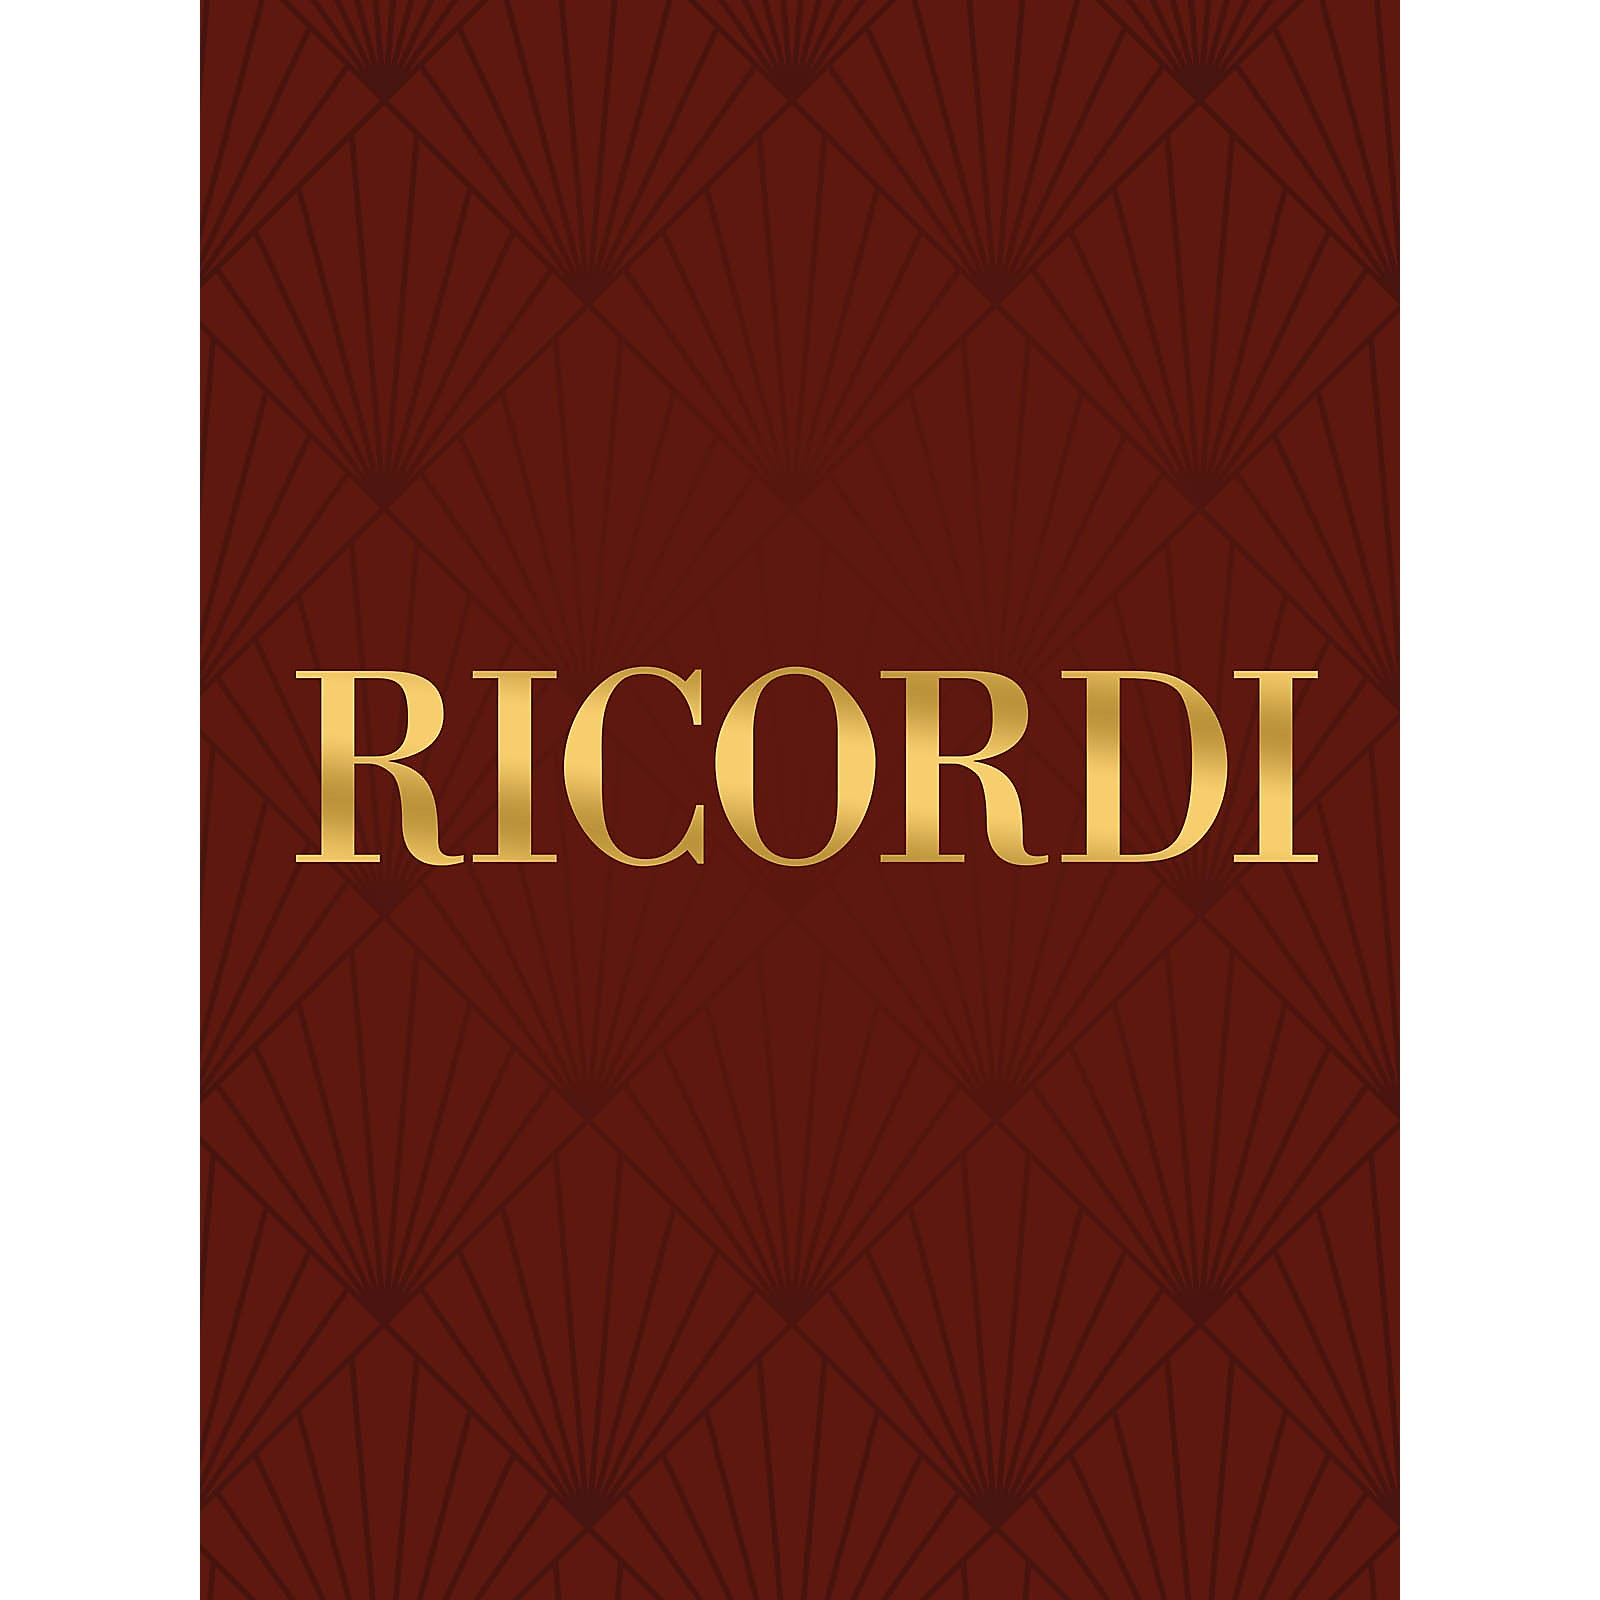 Ricordi 6 Grand Sonatas in the Form of Duets 2 bassoons Woodwind Ensemble  by Etienne Ozi Edited by Enzo Muccetti